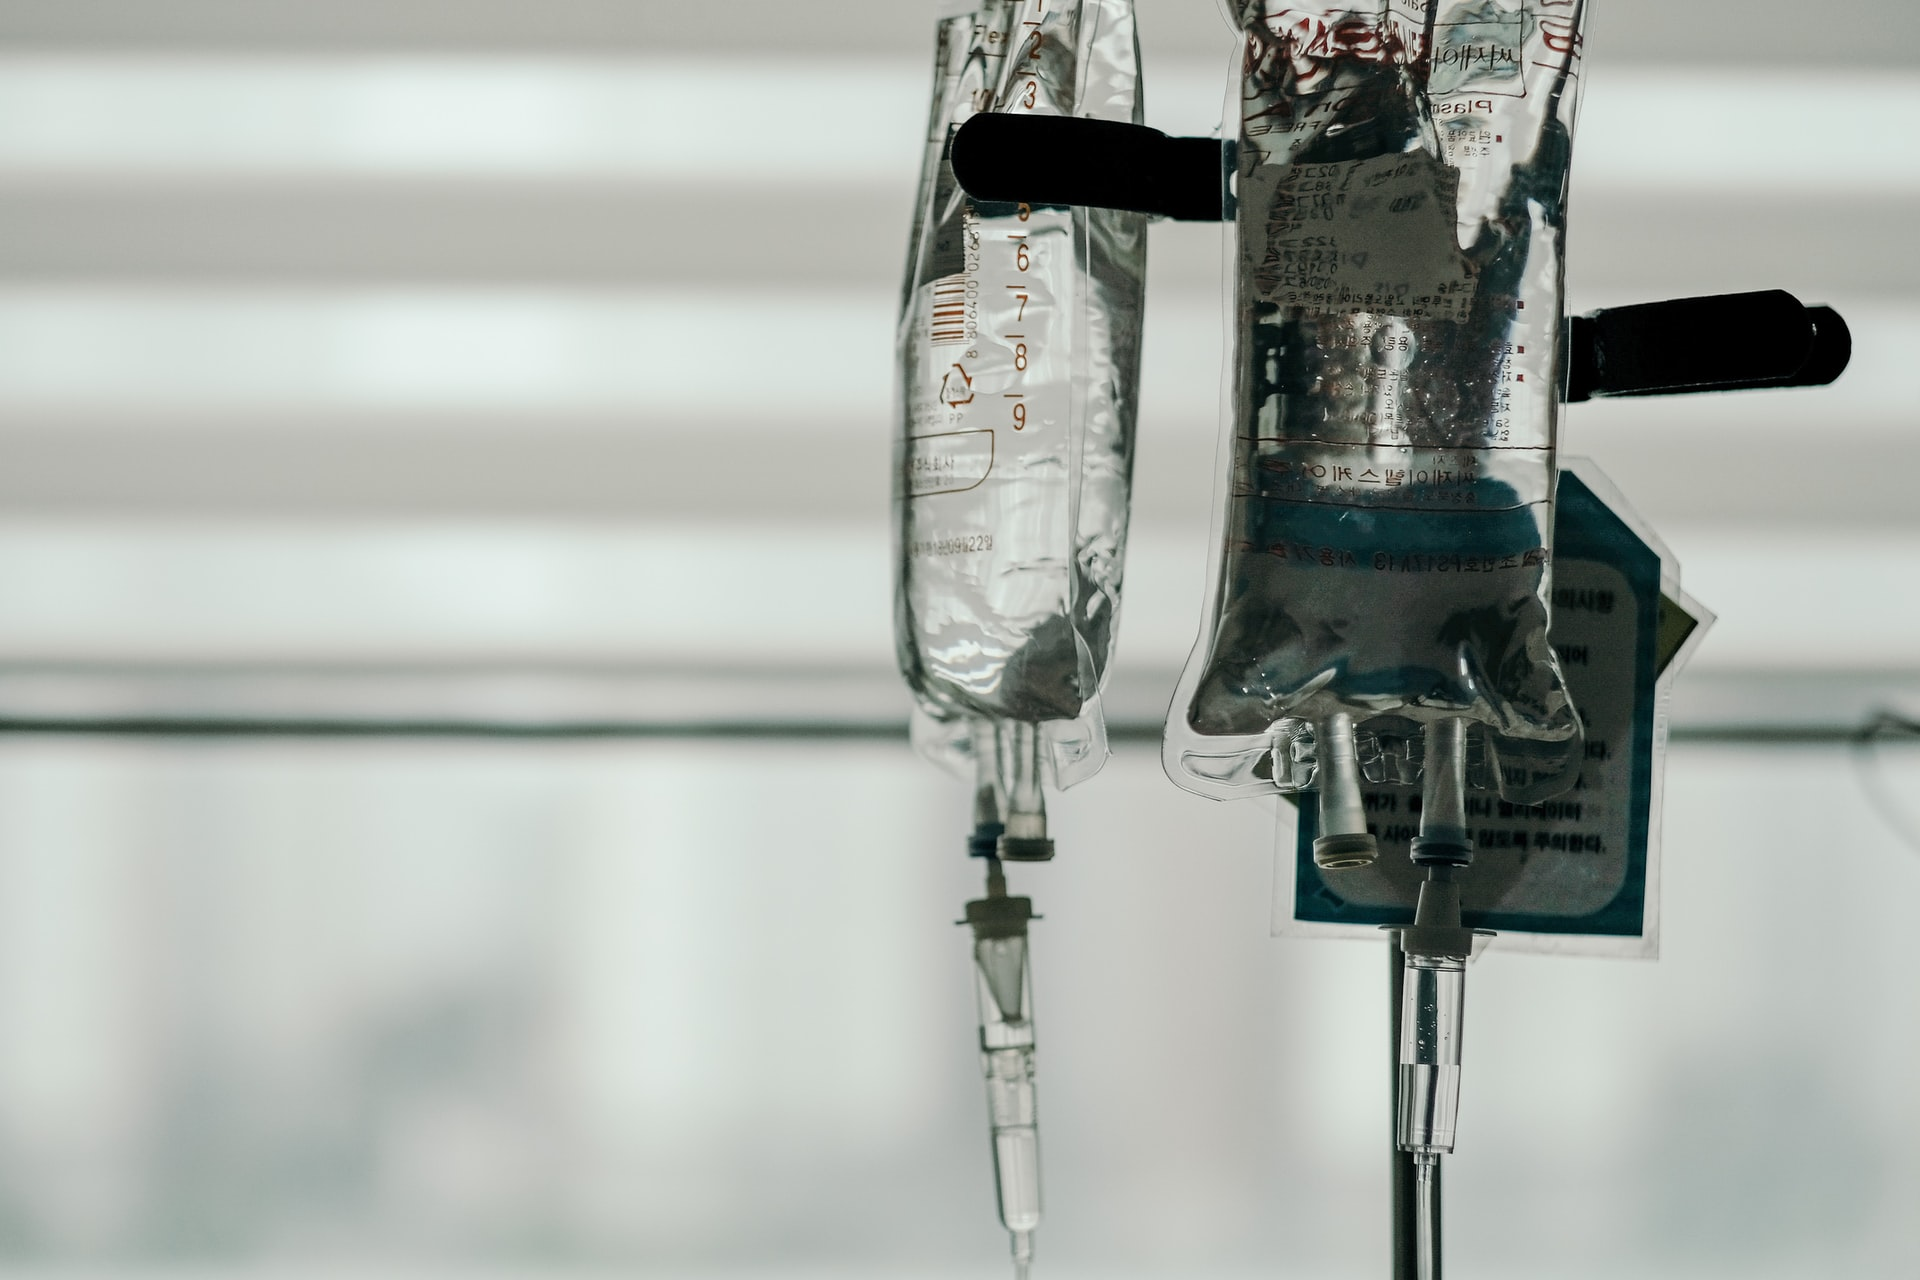 This image shows a few drips hanging in a hospital.